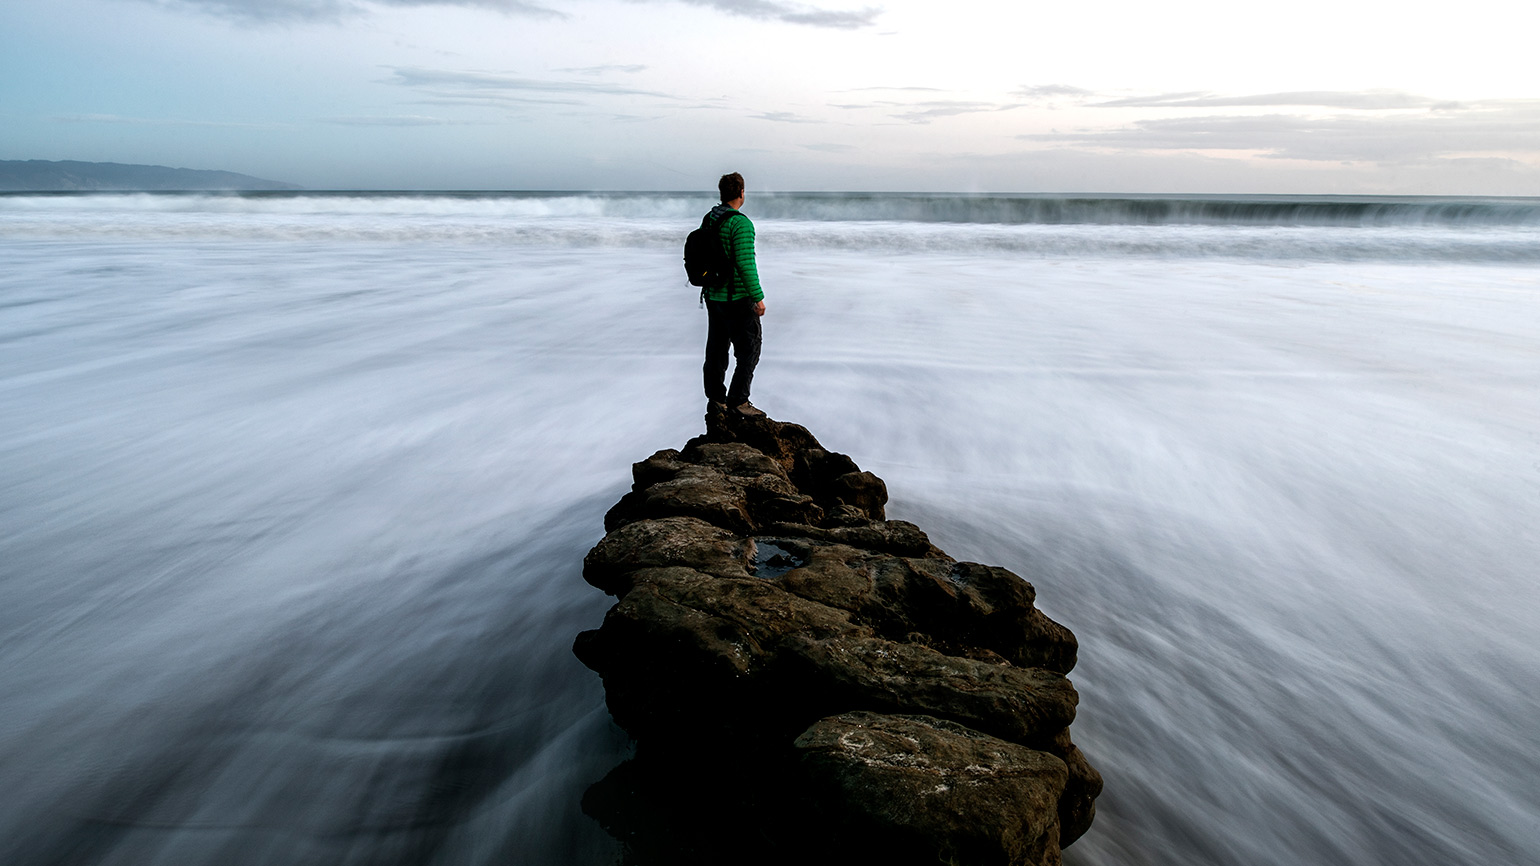 A man stands atop a boulder while water rushes by on both sides